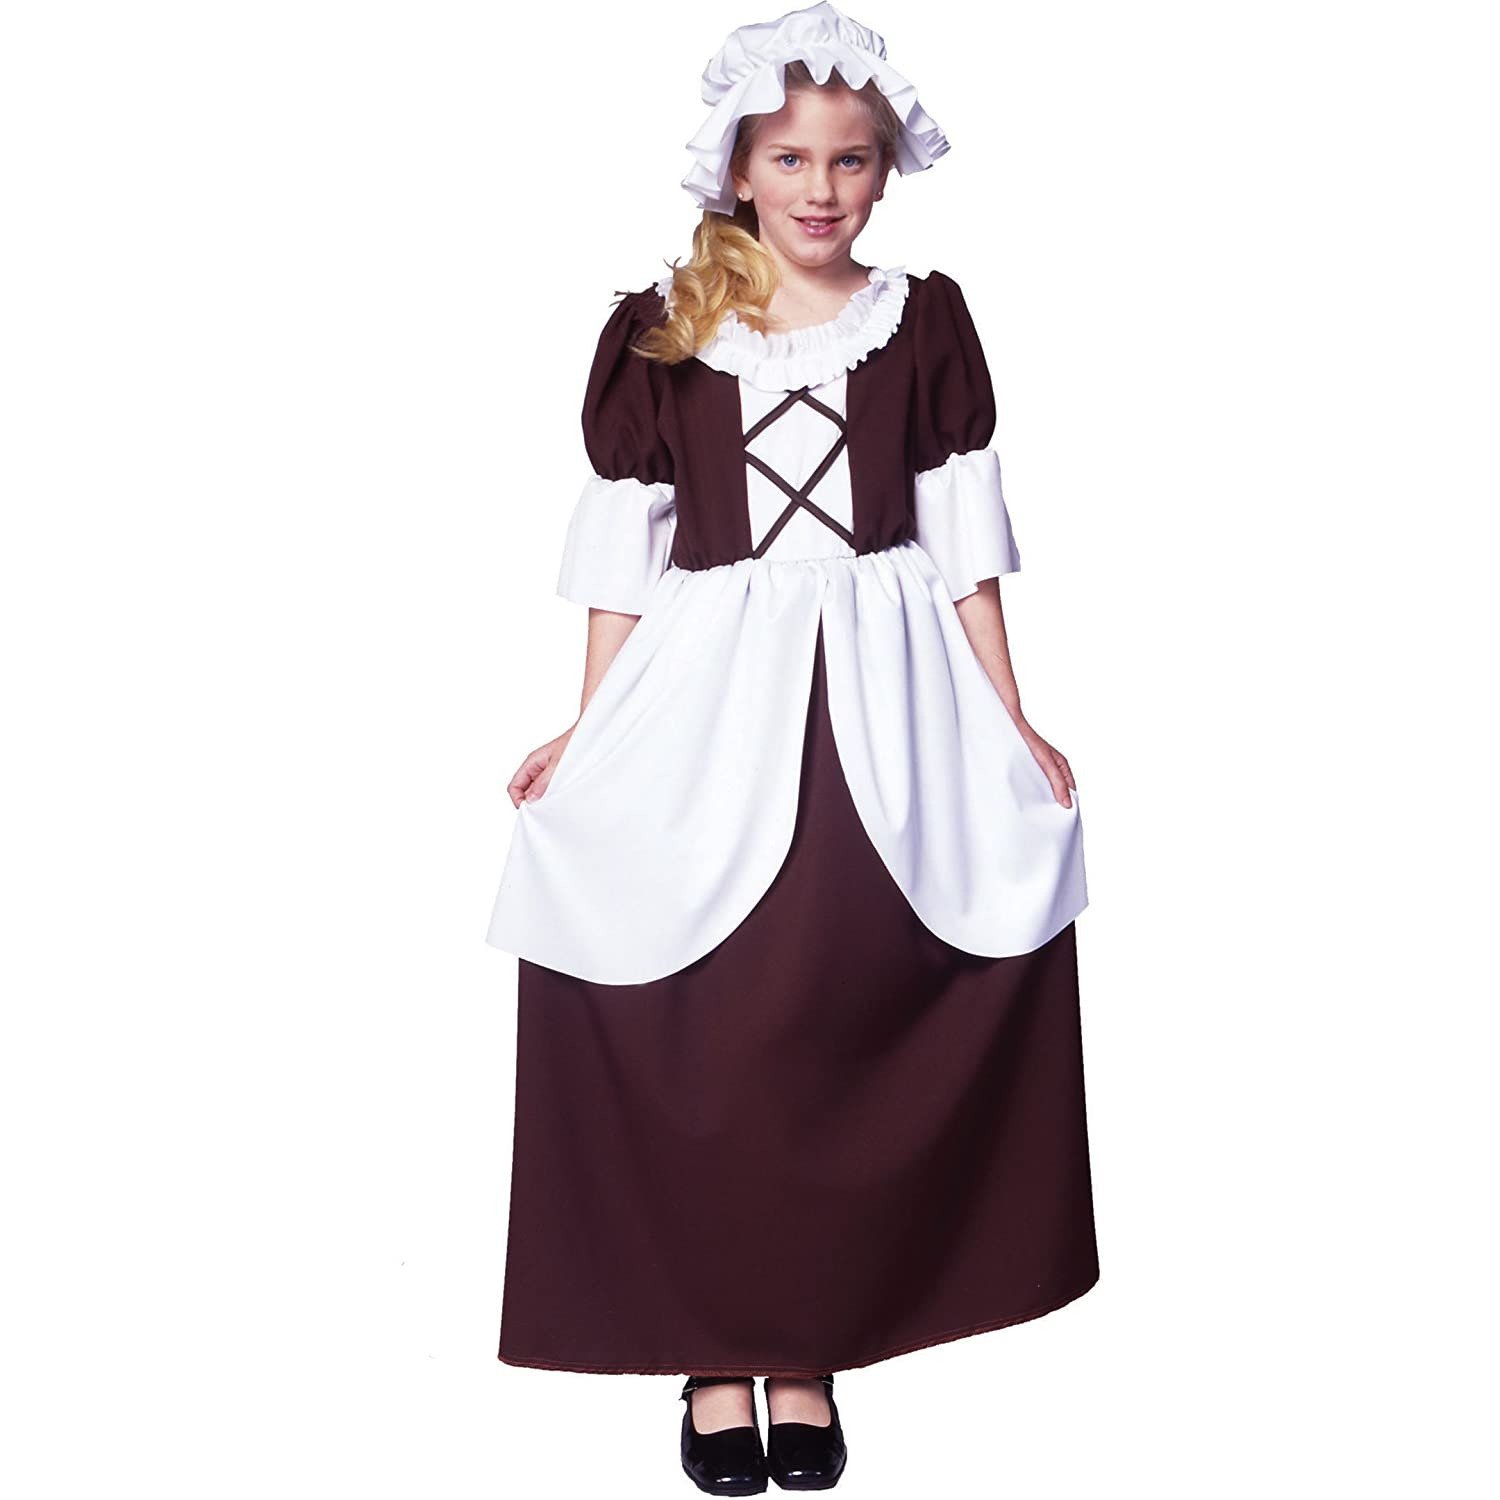 Colonial Costumes for Girls - Kids Colonial Halloween Costumes ...